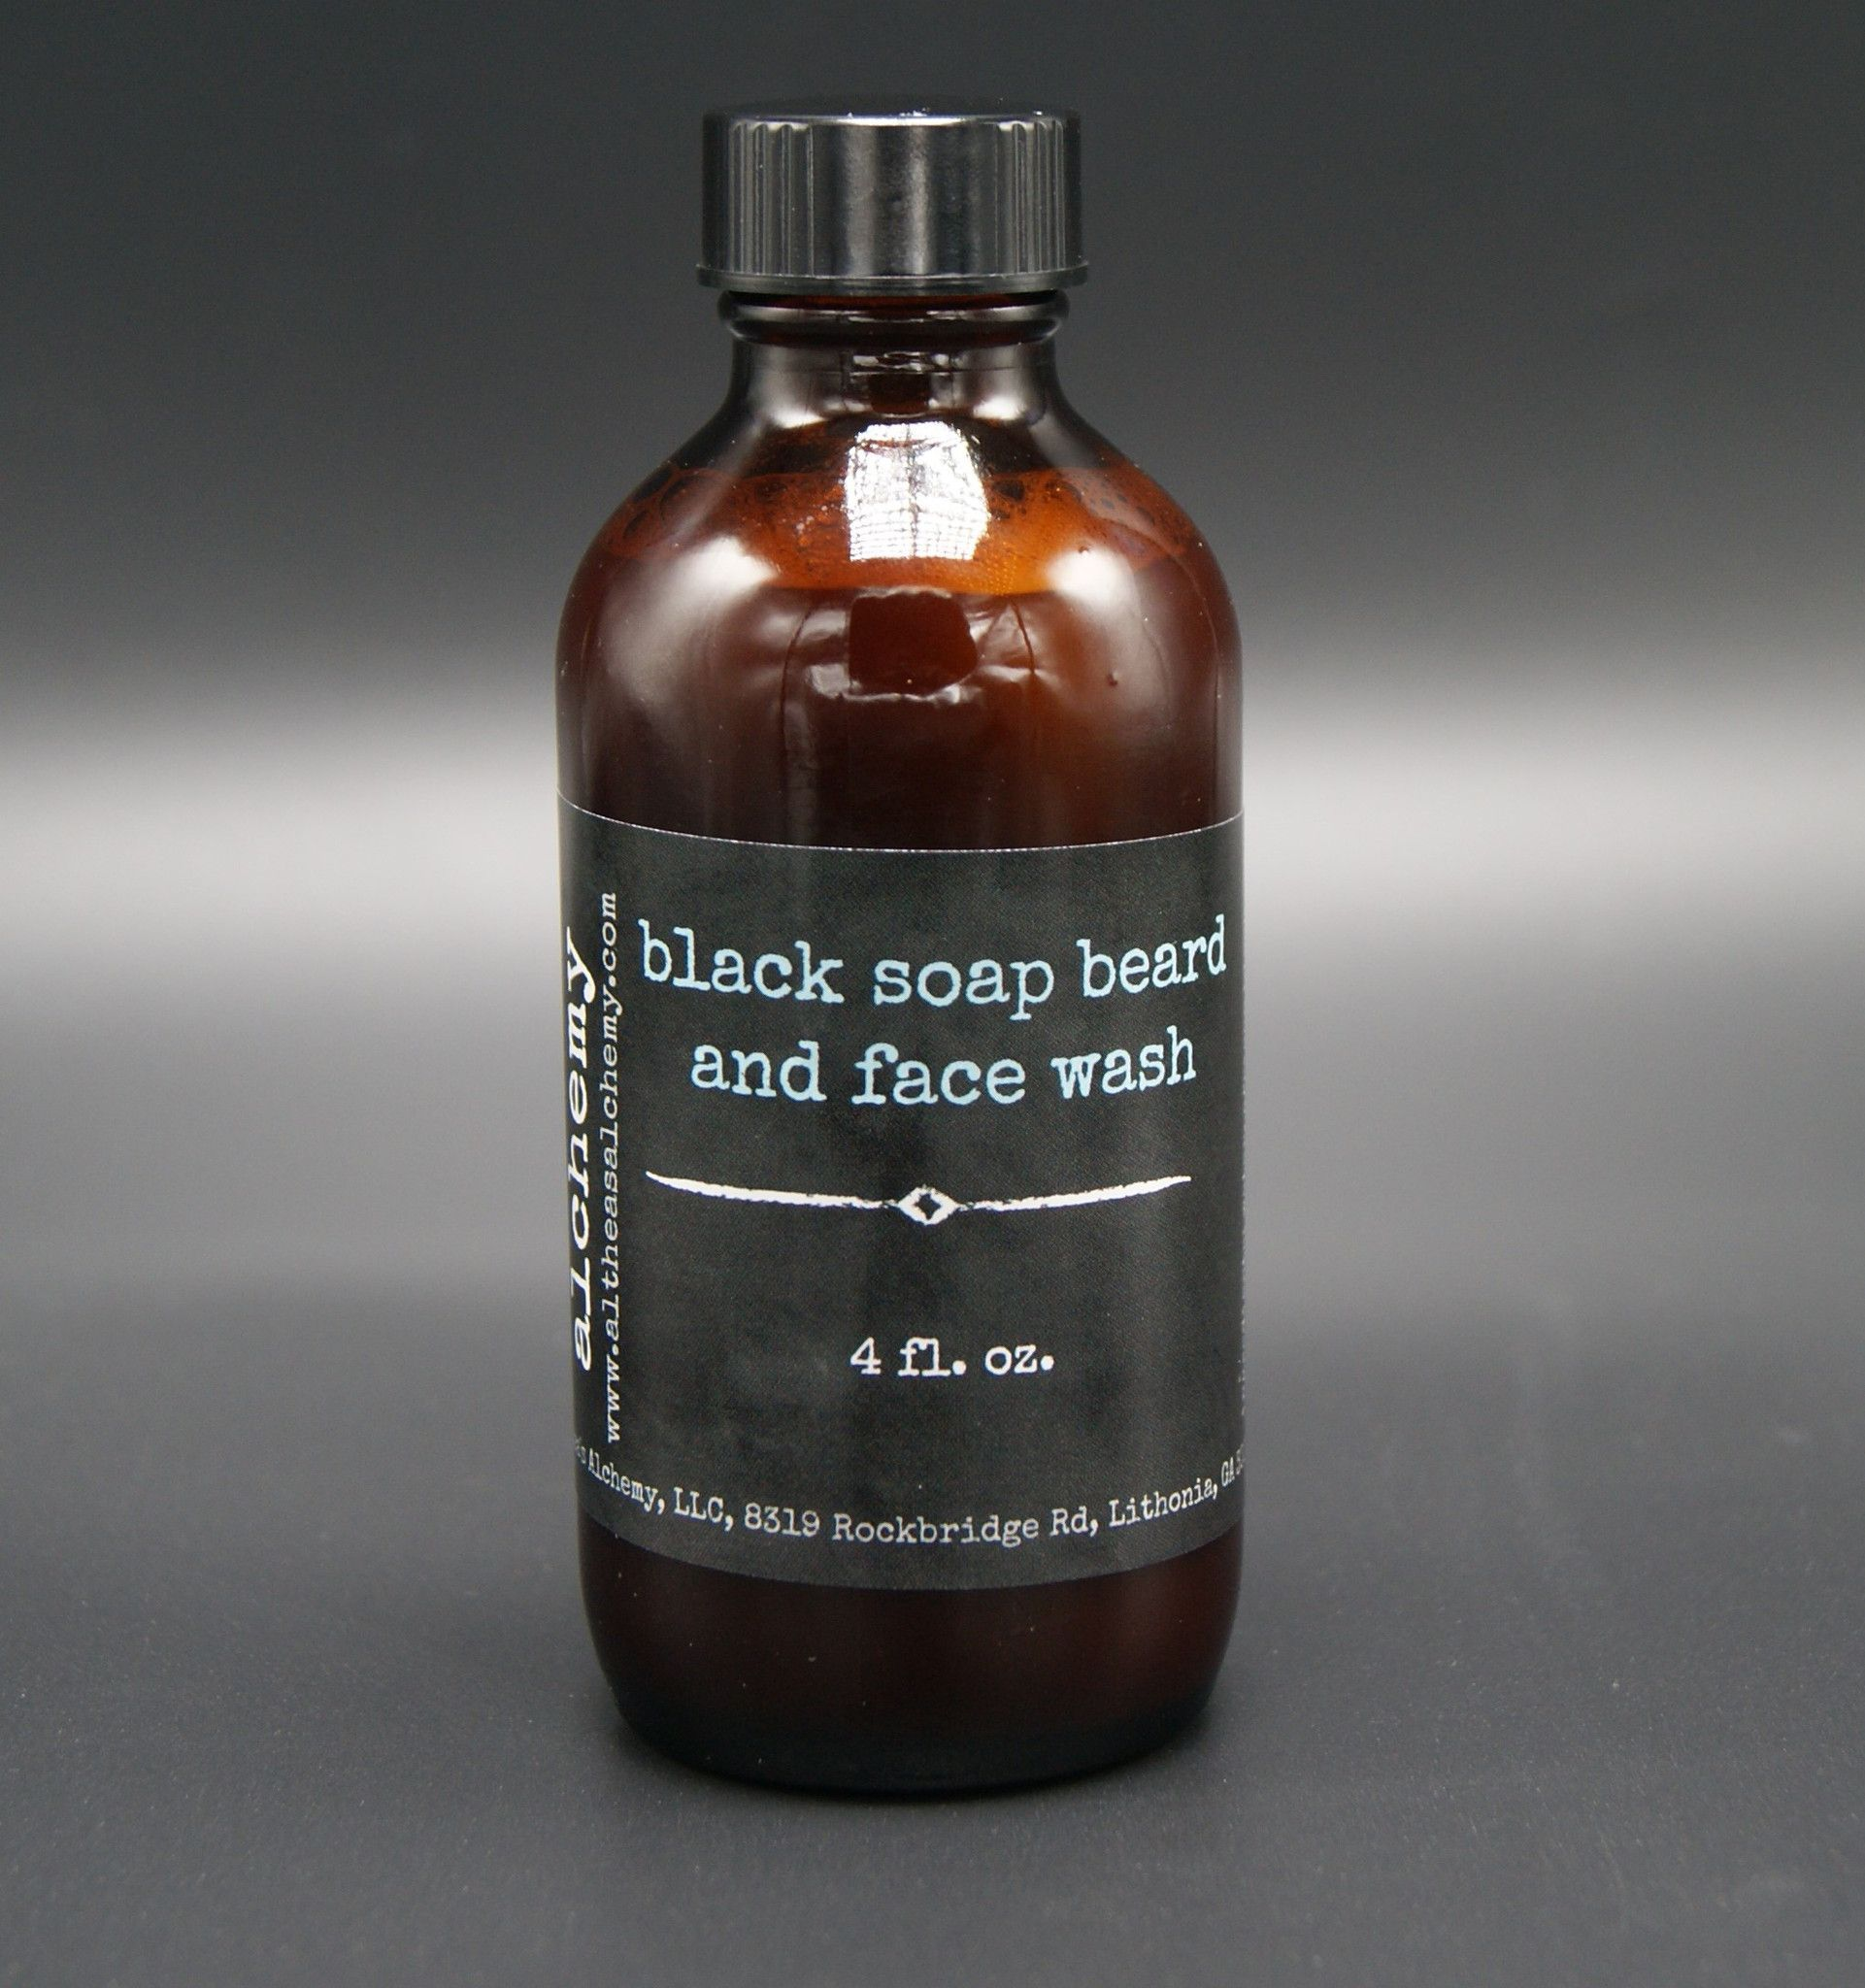 This beard and face wash is made from pure African Black